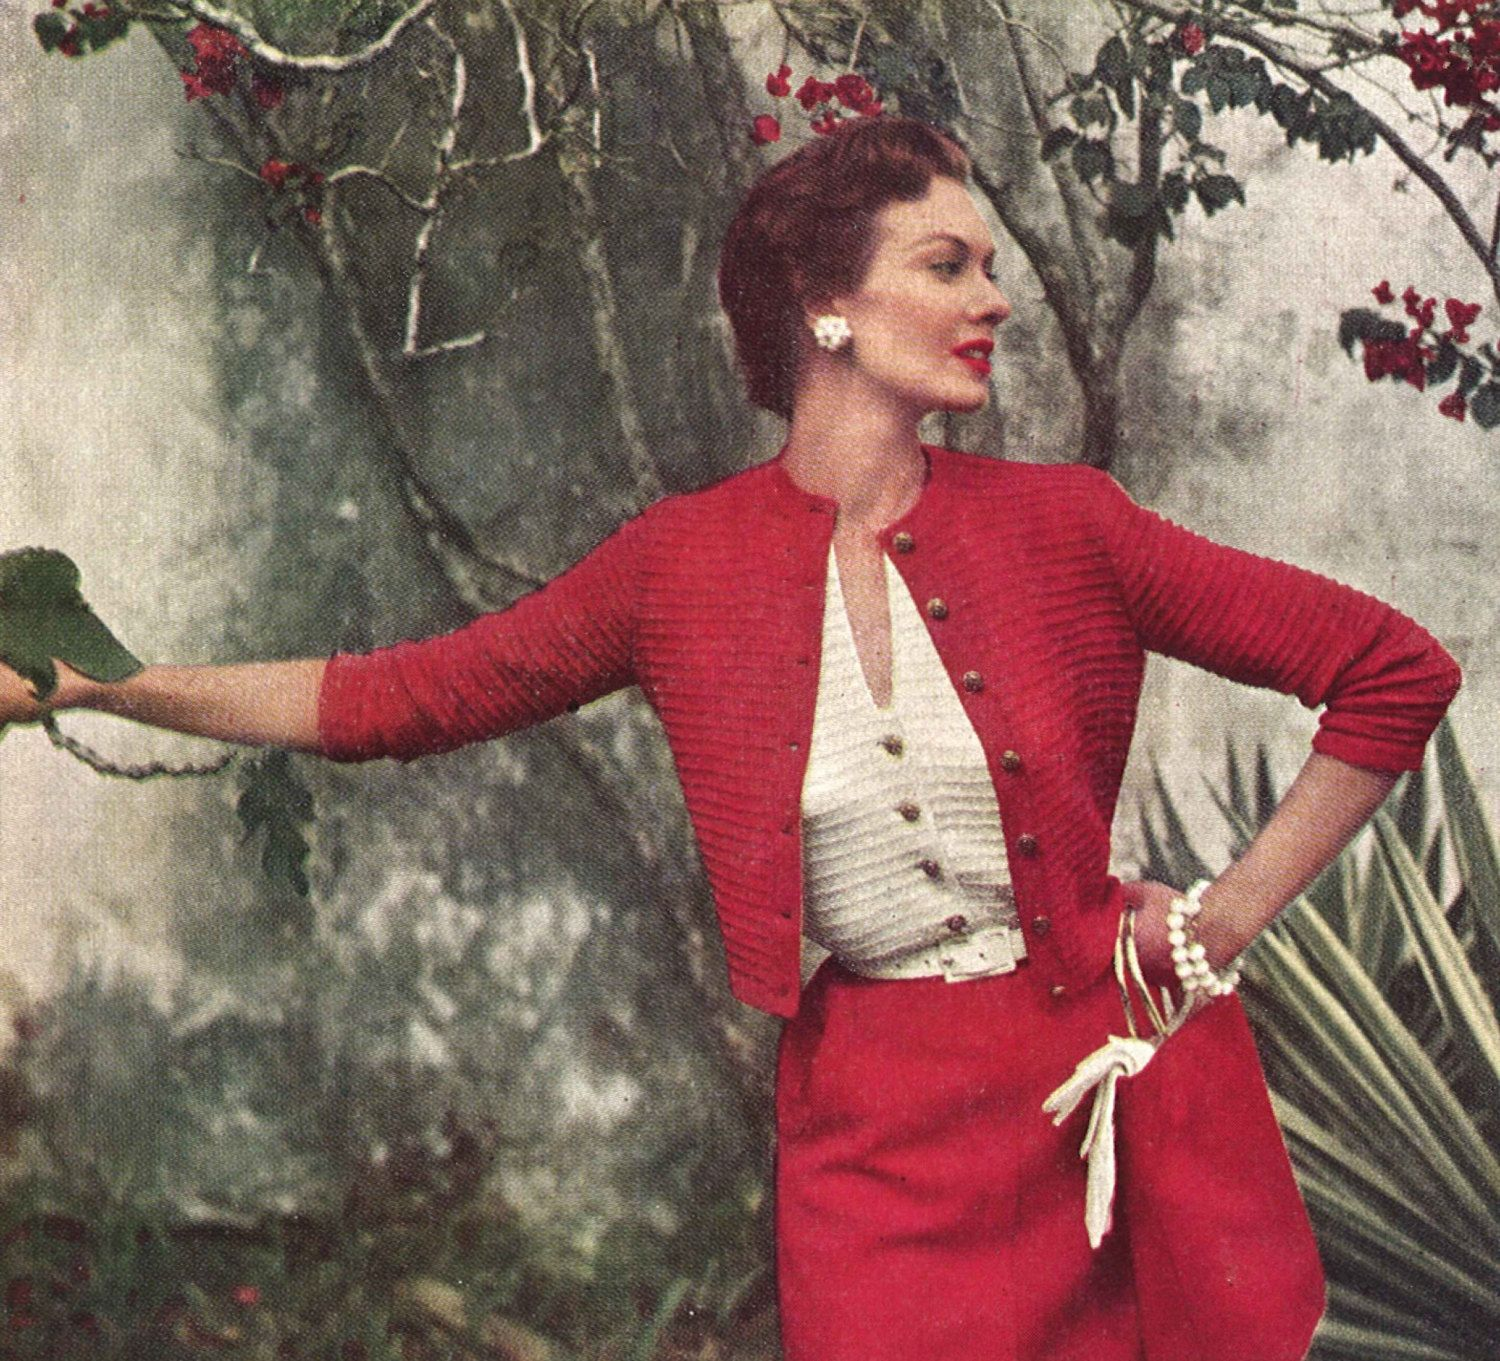 Scarlet twinset 1950s knitting twin set cardigan sweater top scarlet twinset 1950s knitting twin set cardigan sweater top blouse 50s vintage vogue bankloansurffo Choice Image